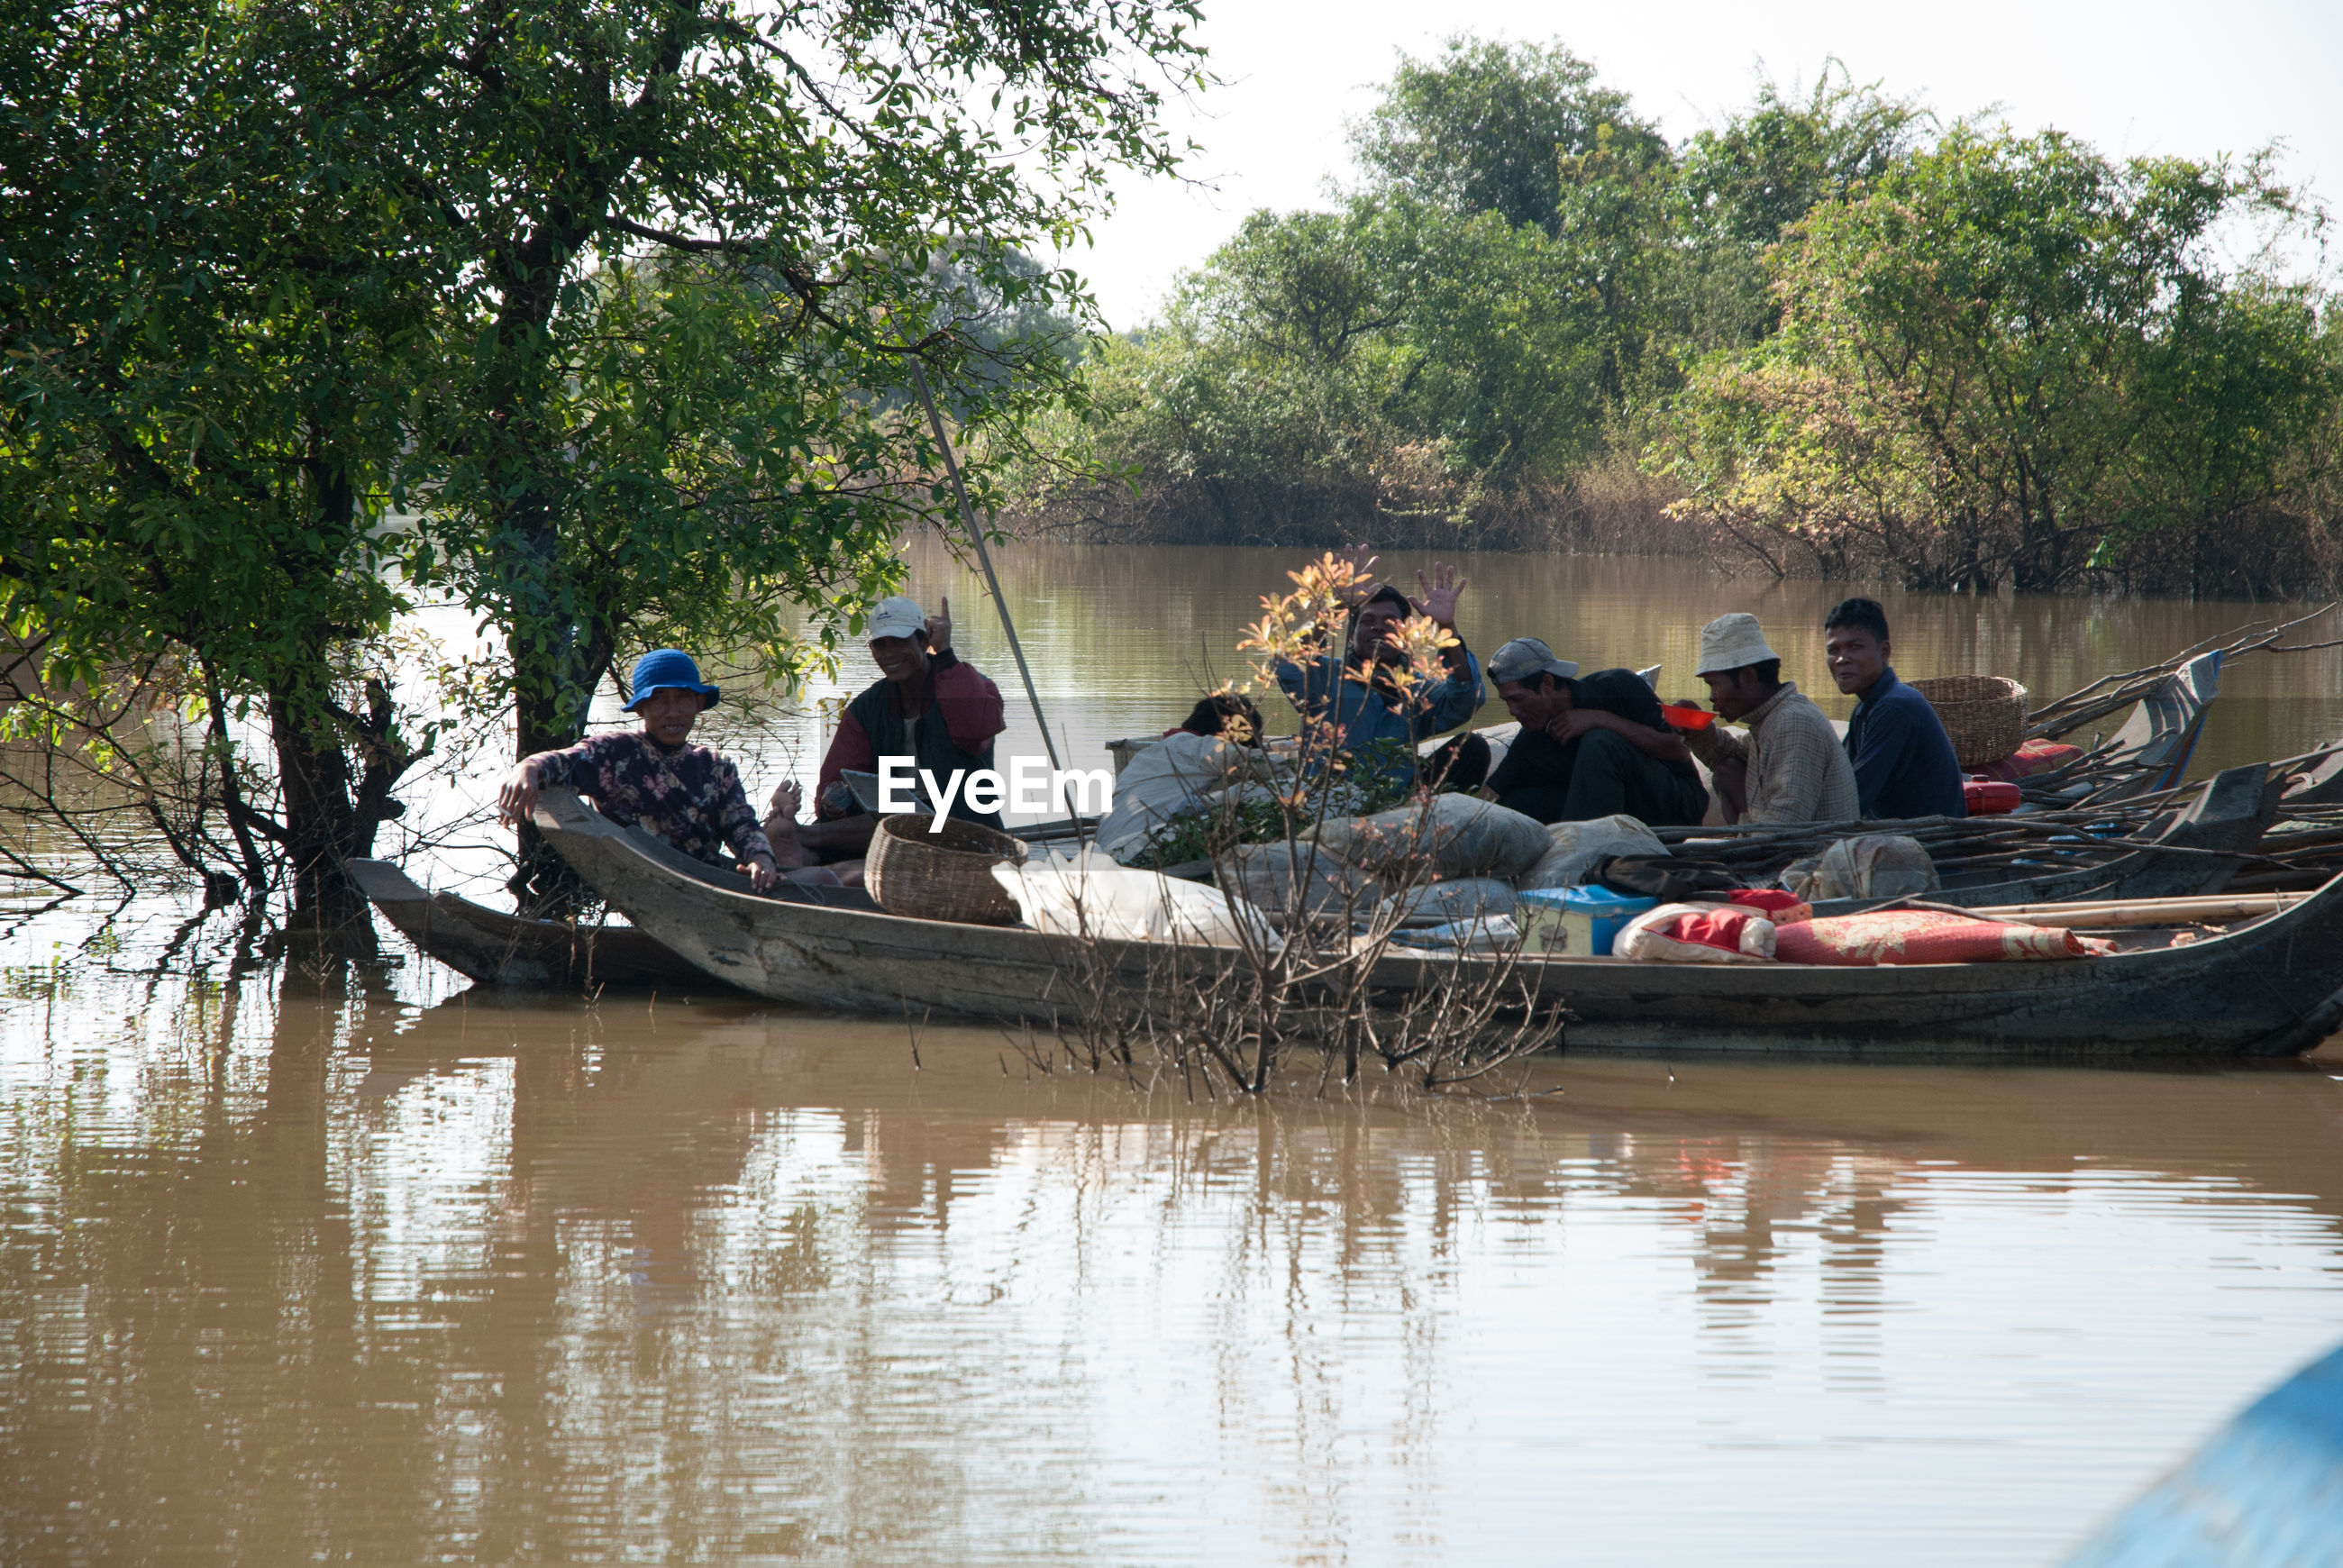 PEOPLE SITTING ON BOAT IN RIVER